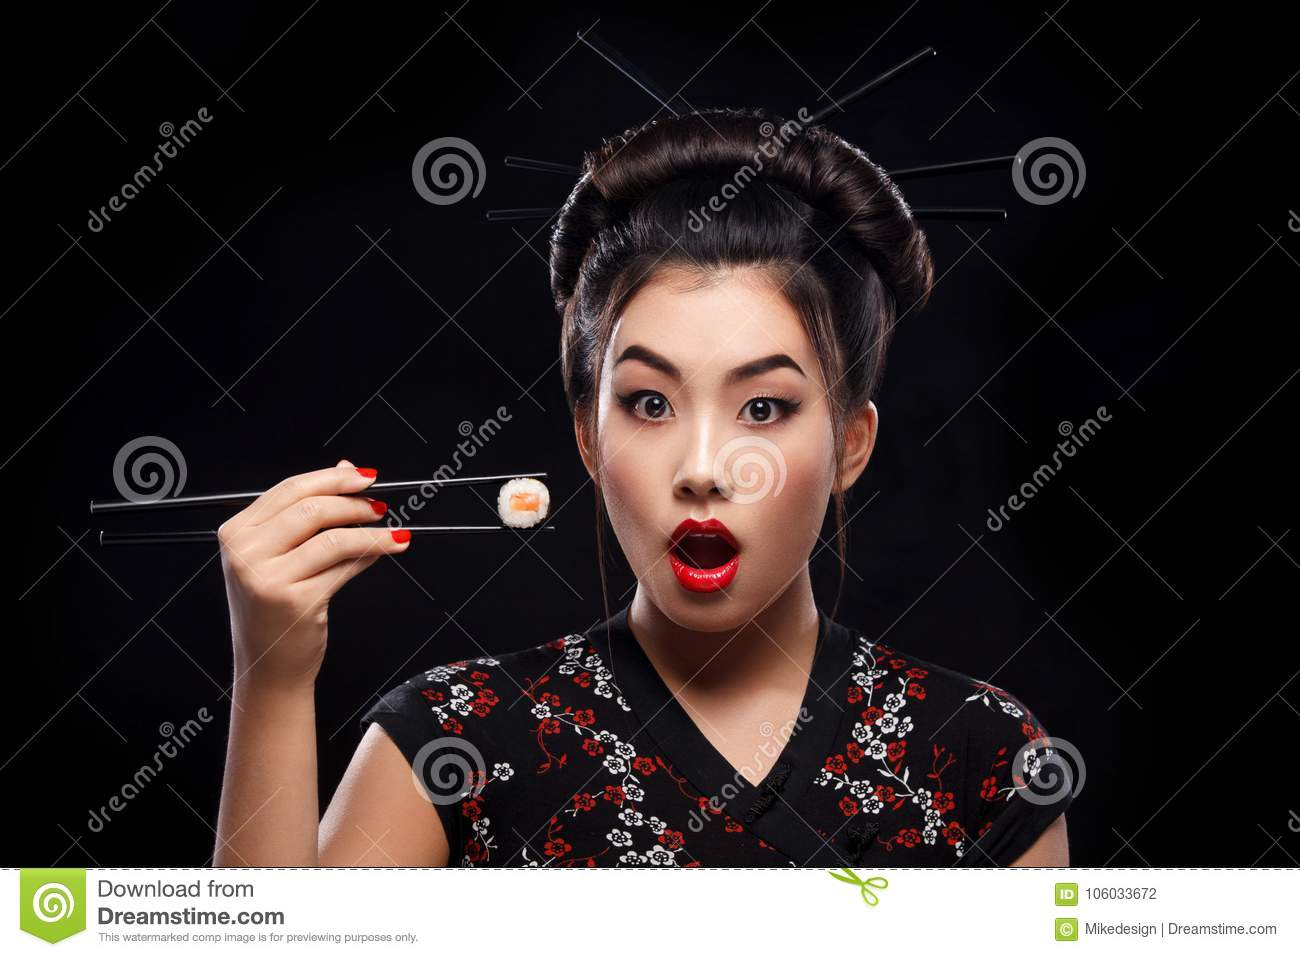 Surprised Asian woman eating sushi and rolls on a black background.